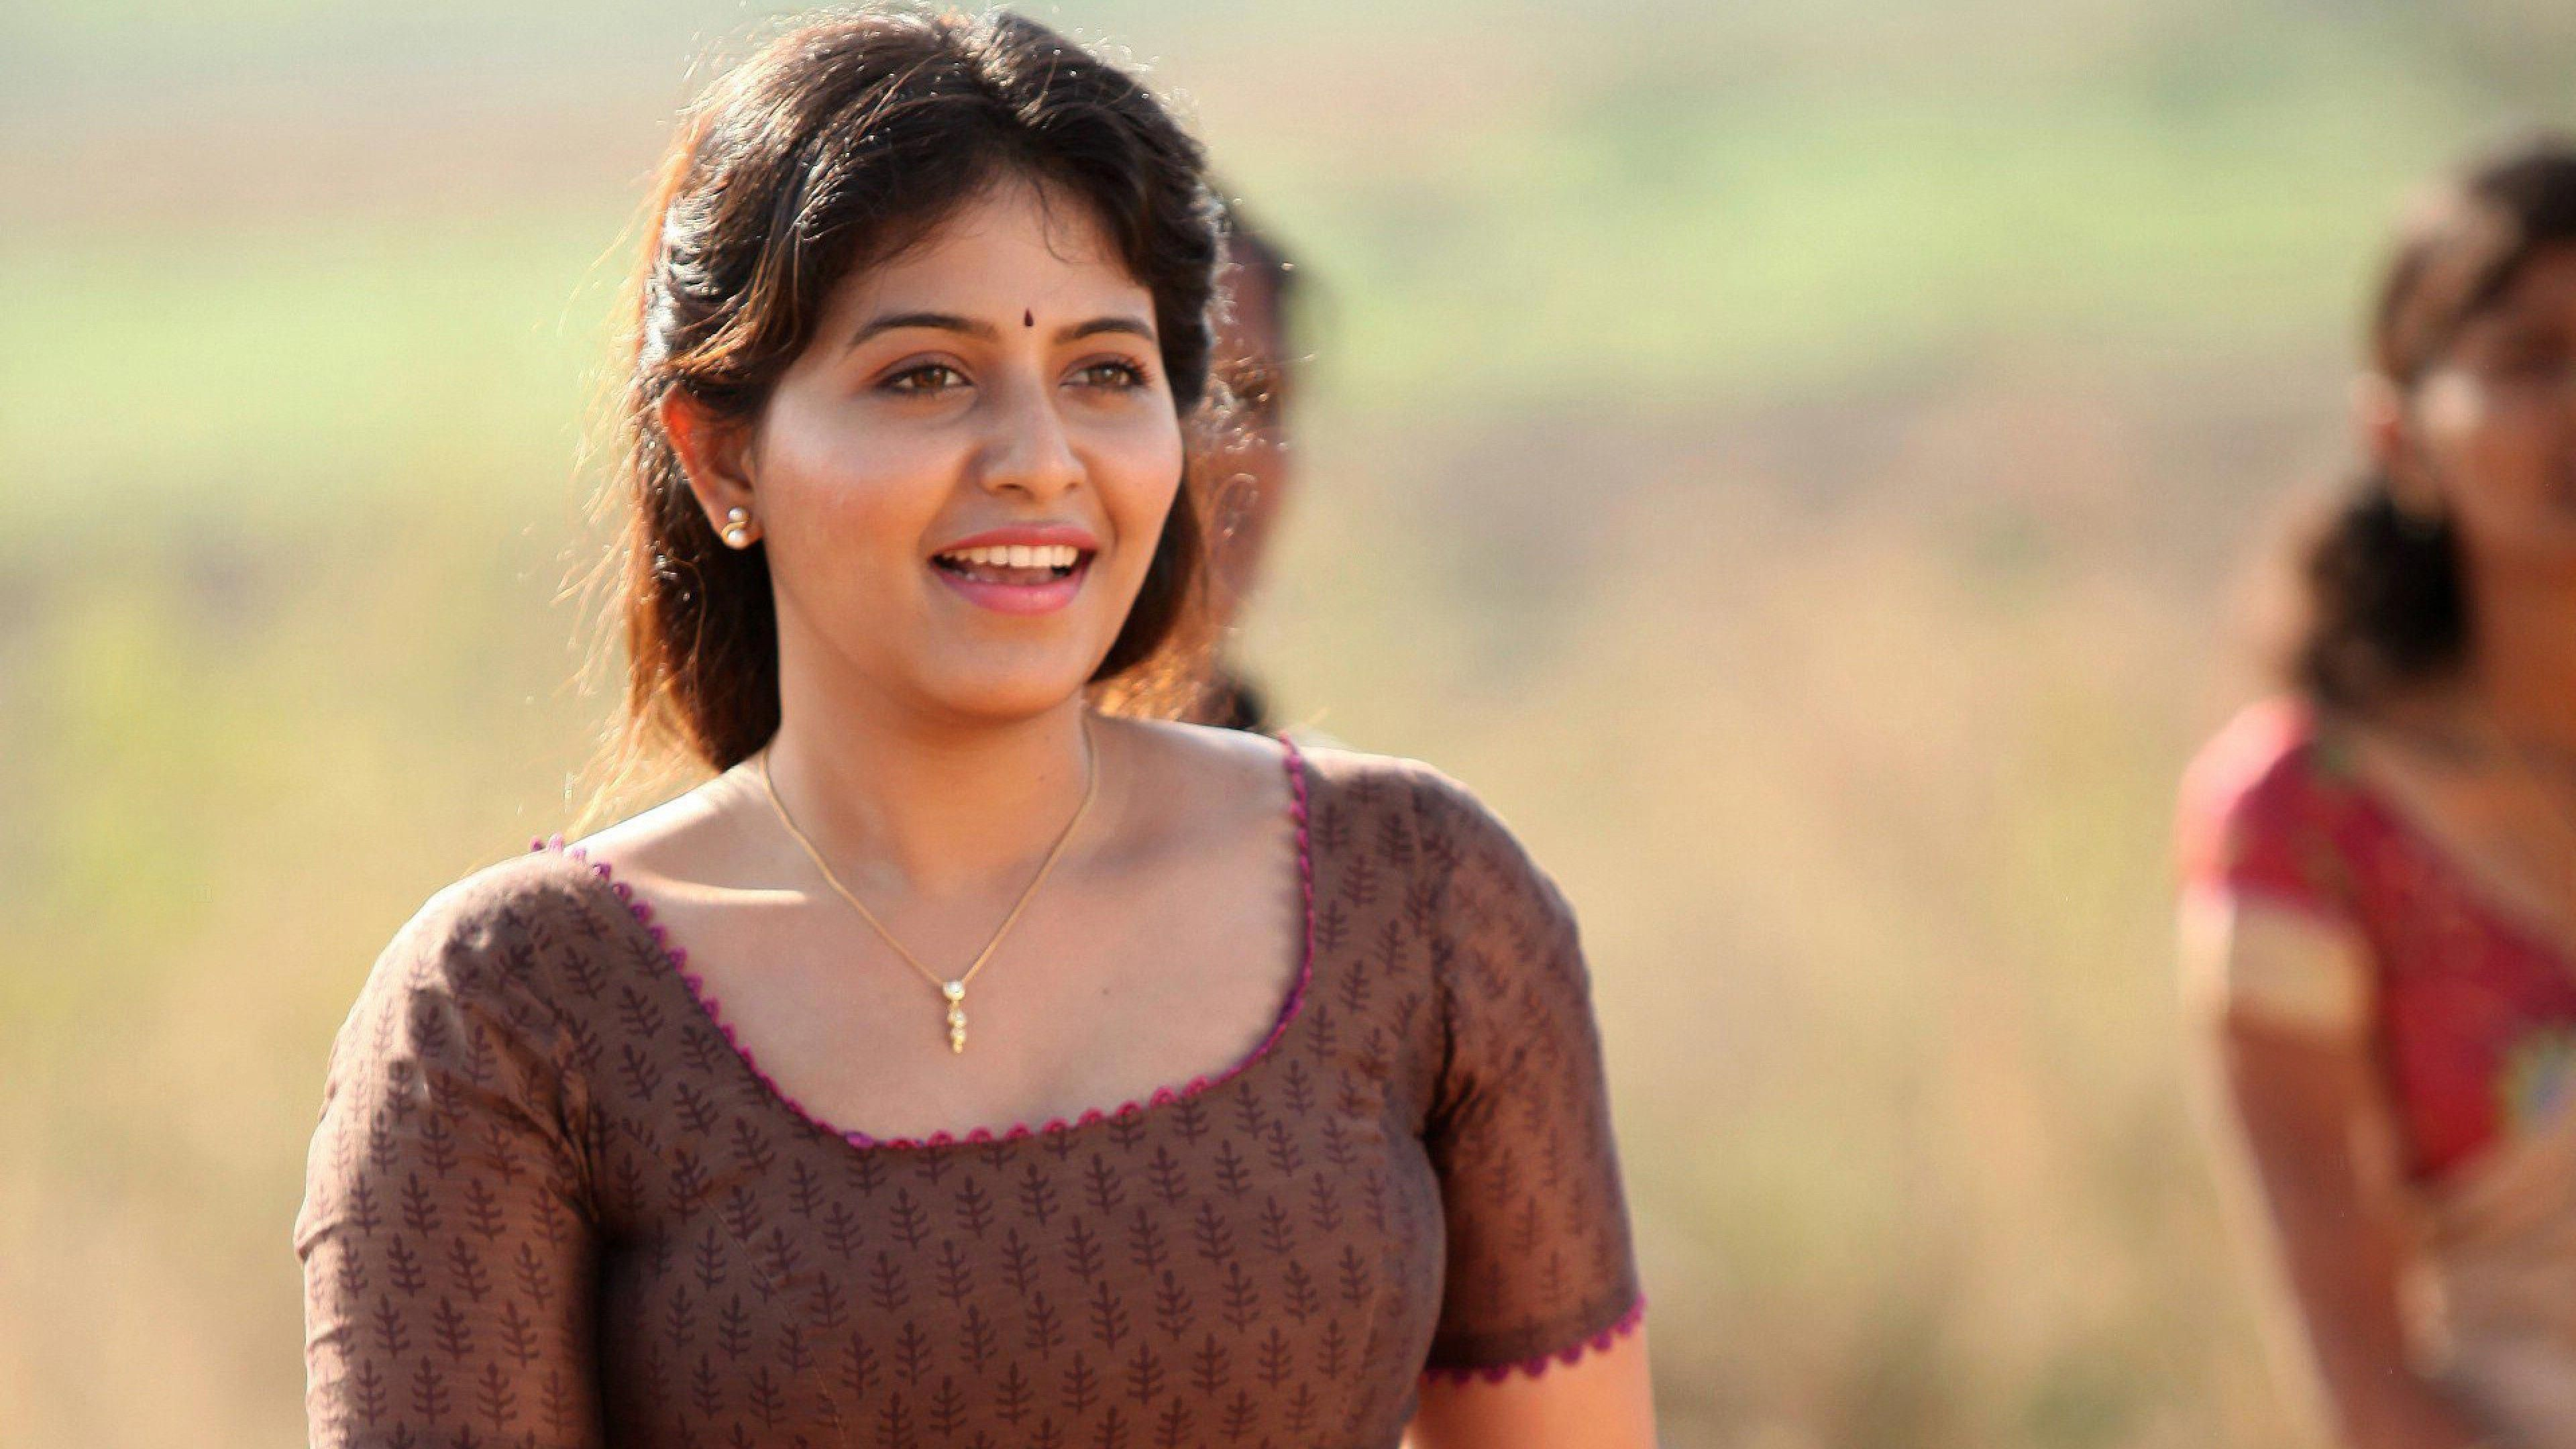 Anjali Tamil Actress Hd 4k Ultra Hd Wallpaper Hd 1080p Wallpaper Actresses Tamil Actress Background Images Hd